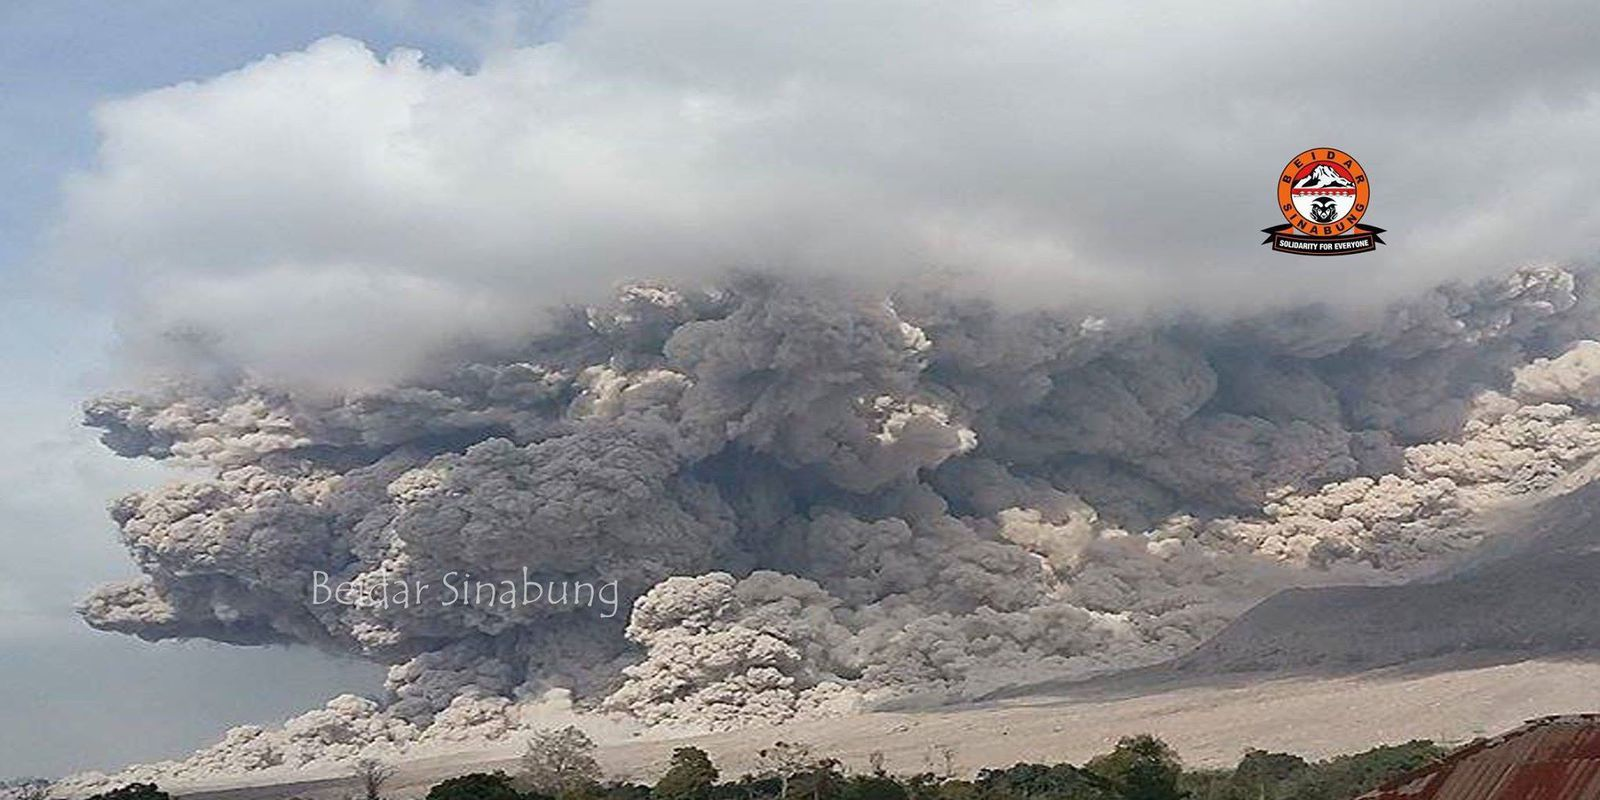 Sinabung - colulée of pyroclastic 07/07/2015 - photo Hasron David Ginting via Beidar Sinabung